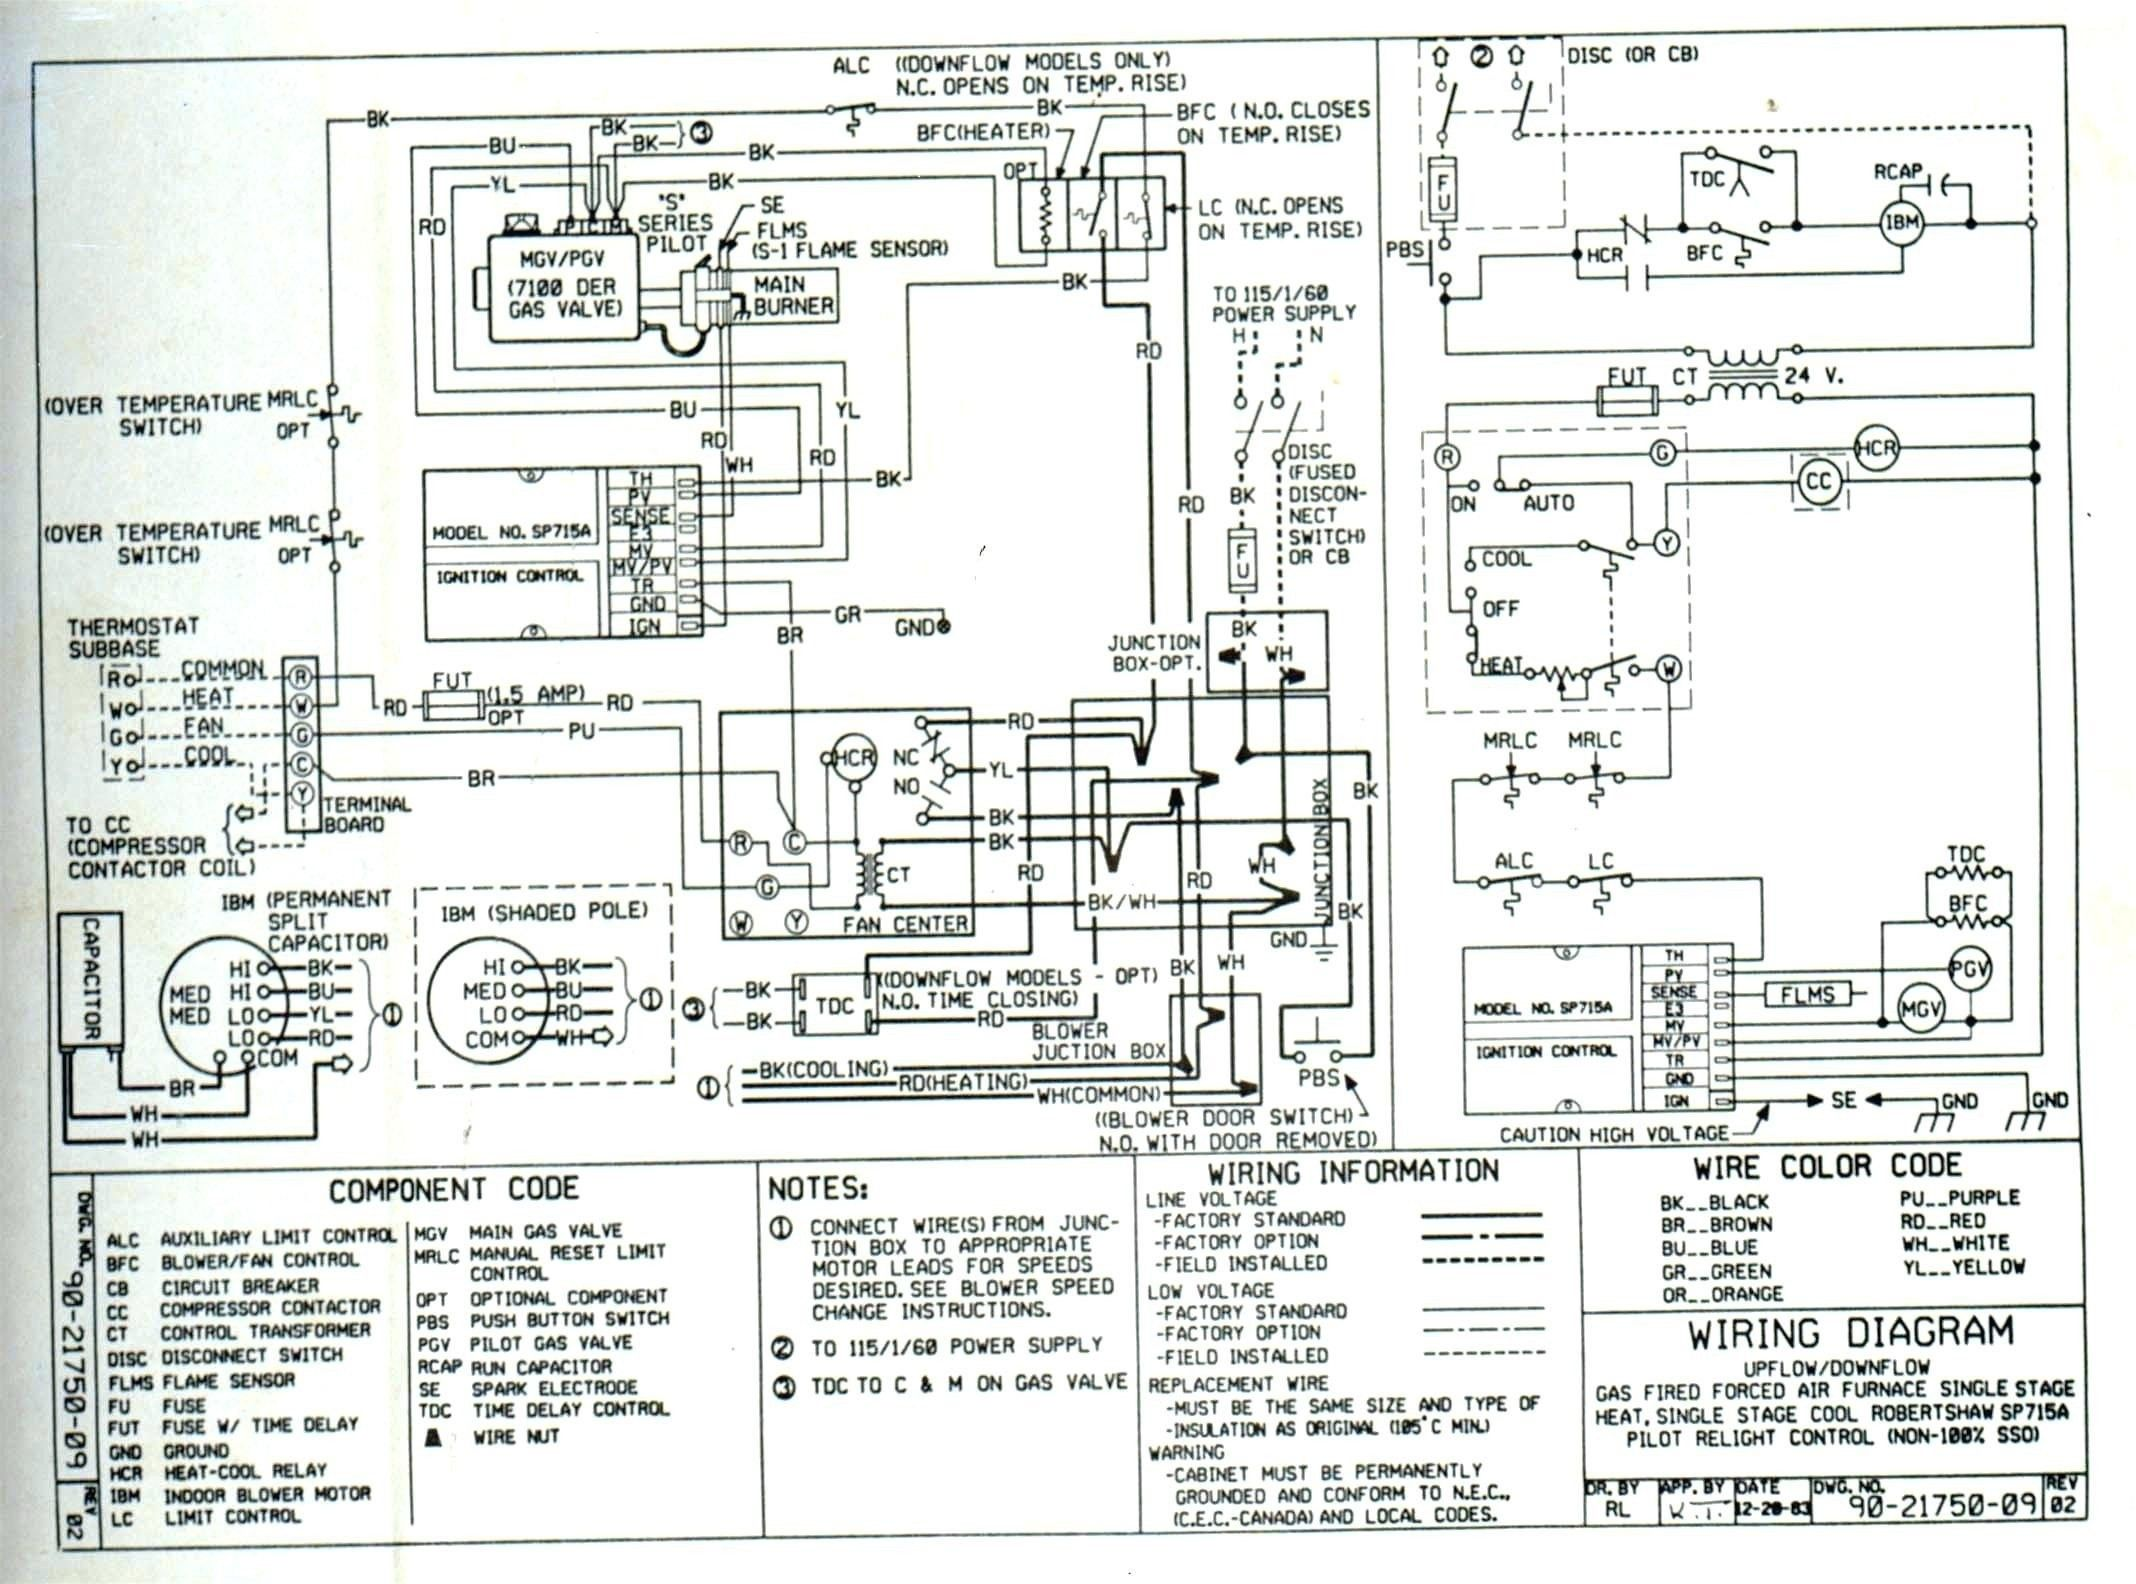 Unique Wiring Diagram For A 2004 Jeep Grand Cherokee Electrical Diagram Diagram Wire